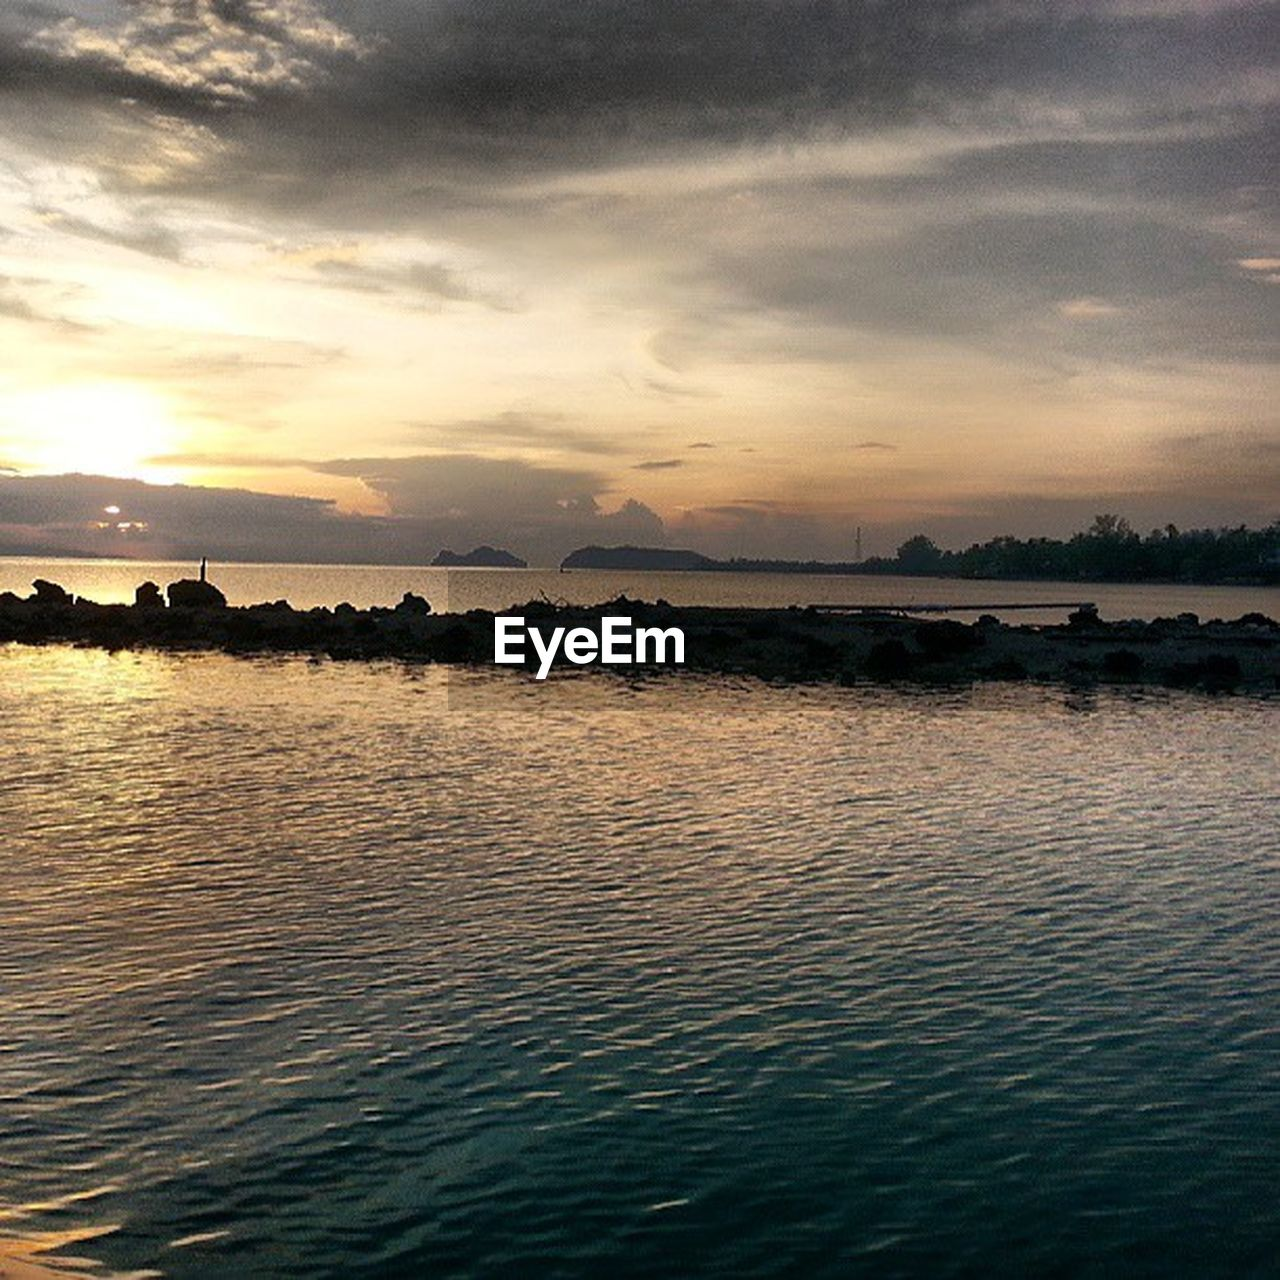 water, sunset, sky, scenics, tranquil scene, beauty in nature, nature, cloud - sky, tranquility, river, reflection, waterfront, rippled, no people, outdoors, architecture, nautical vessel, day, tree